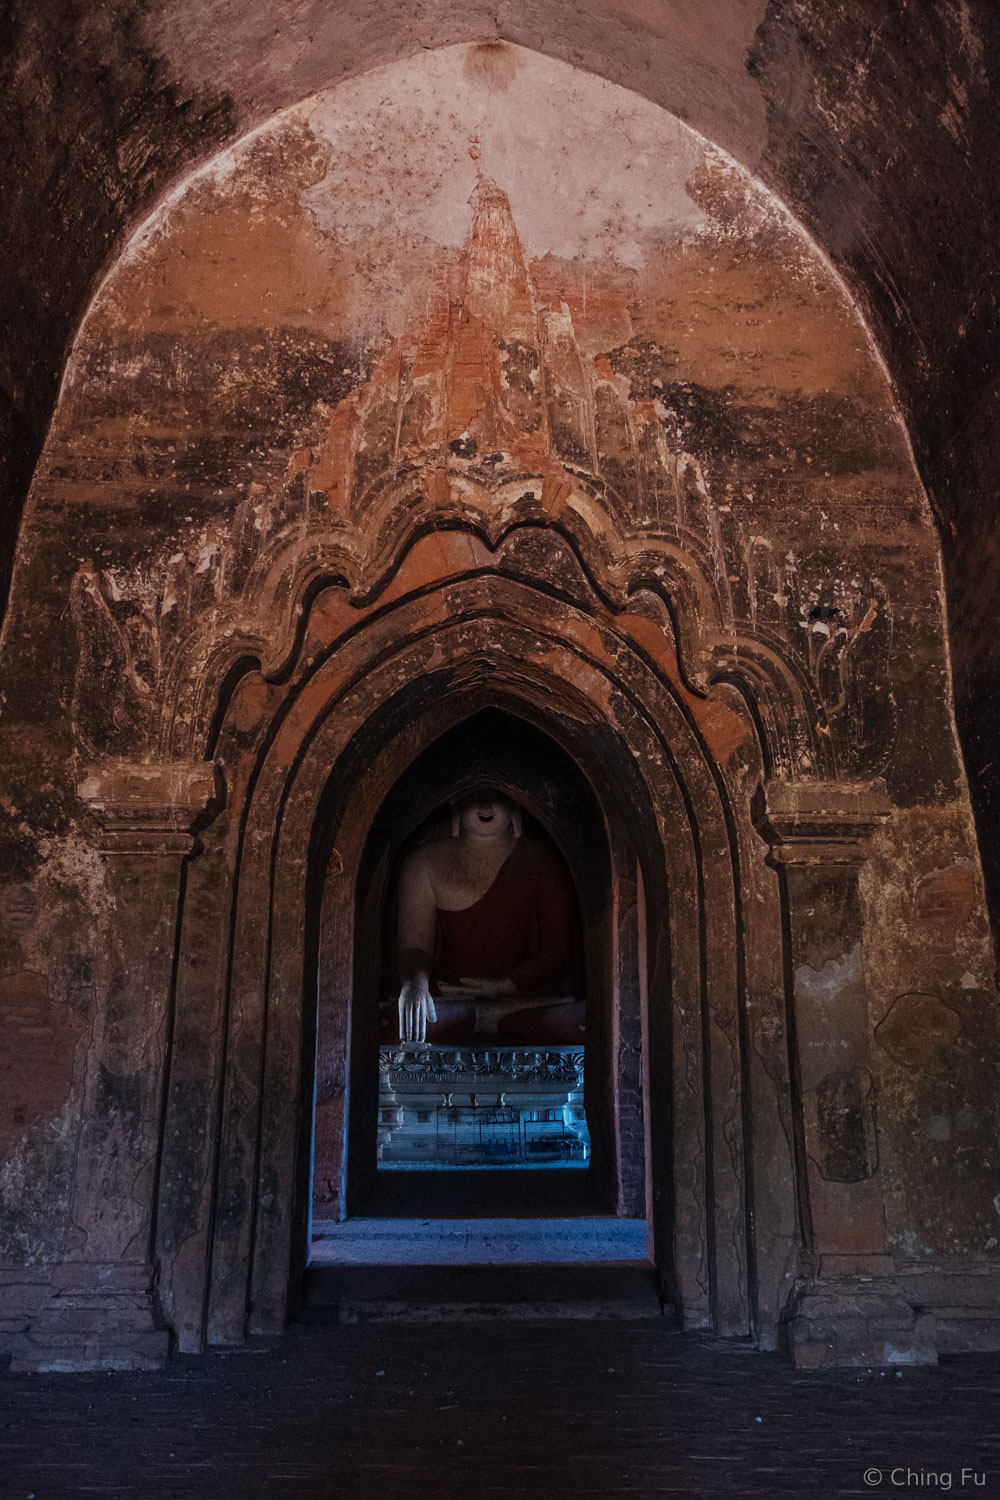 Original frescos in the temples. Some of these artwork covered the entrances.